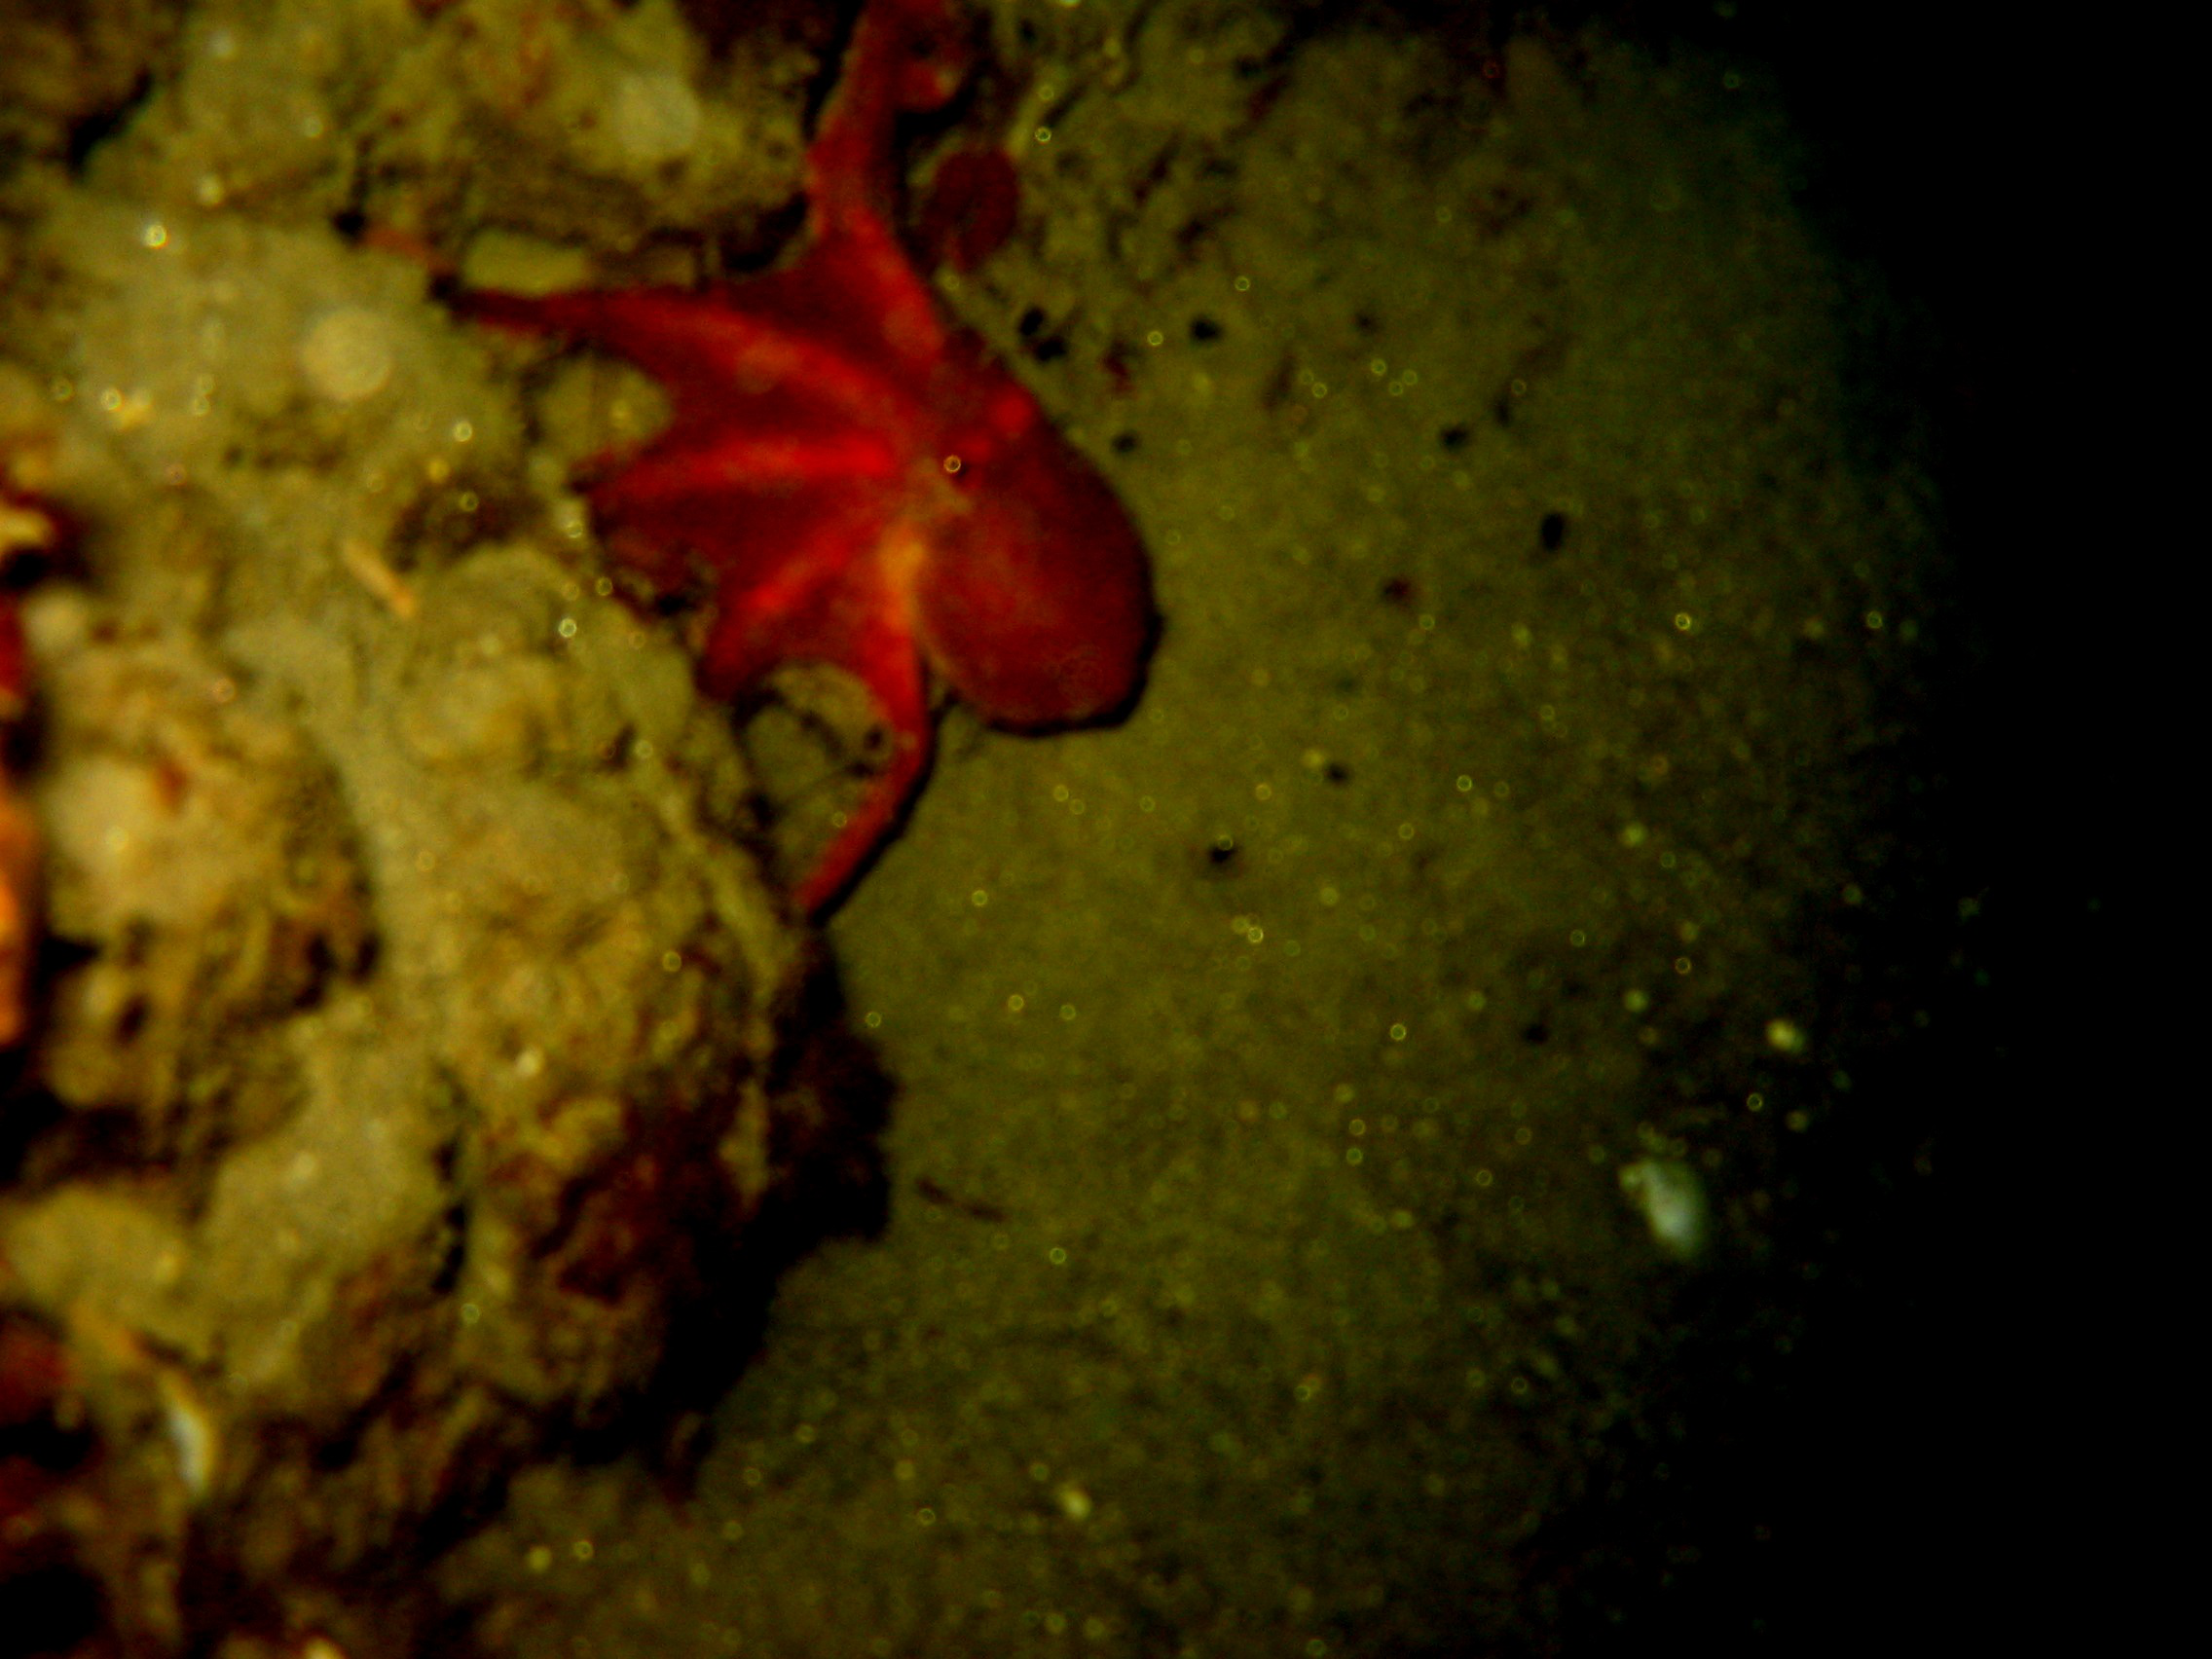 two-spotted octopus